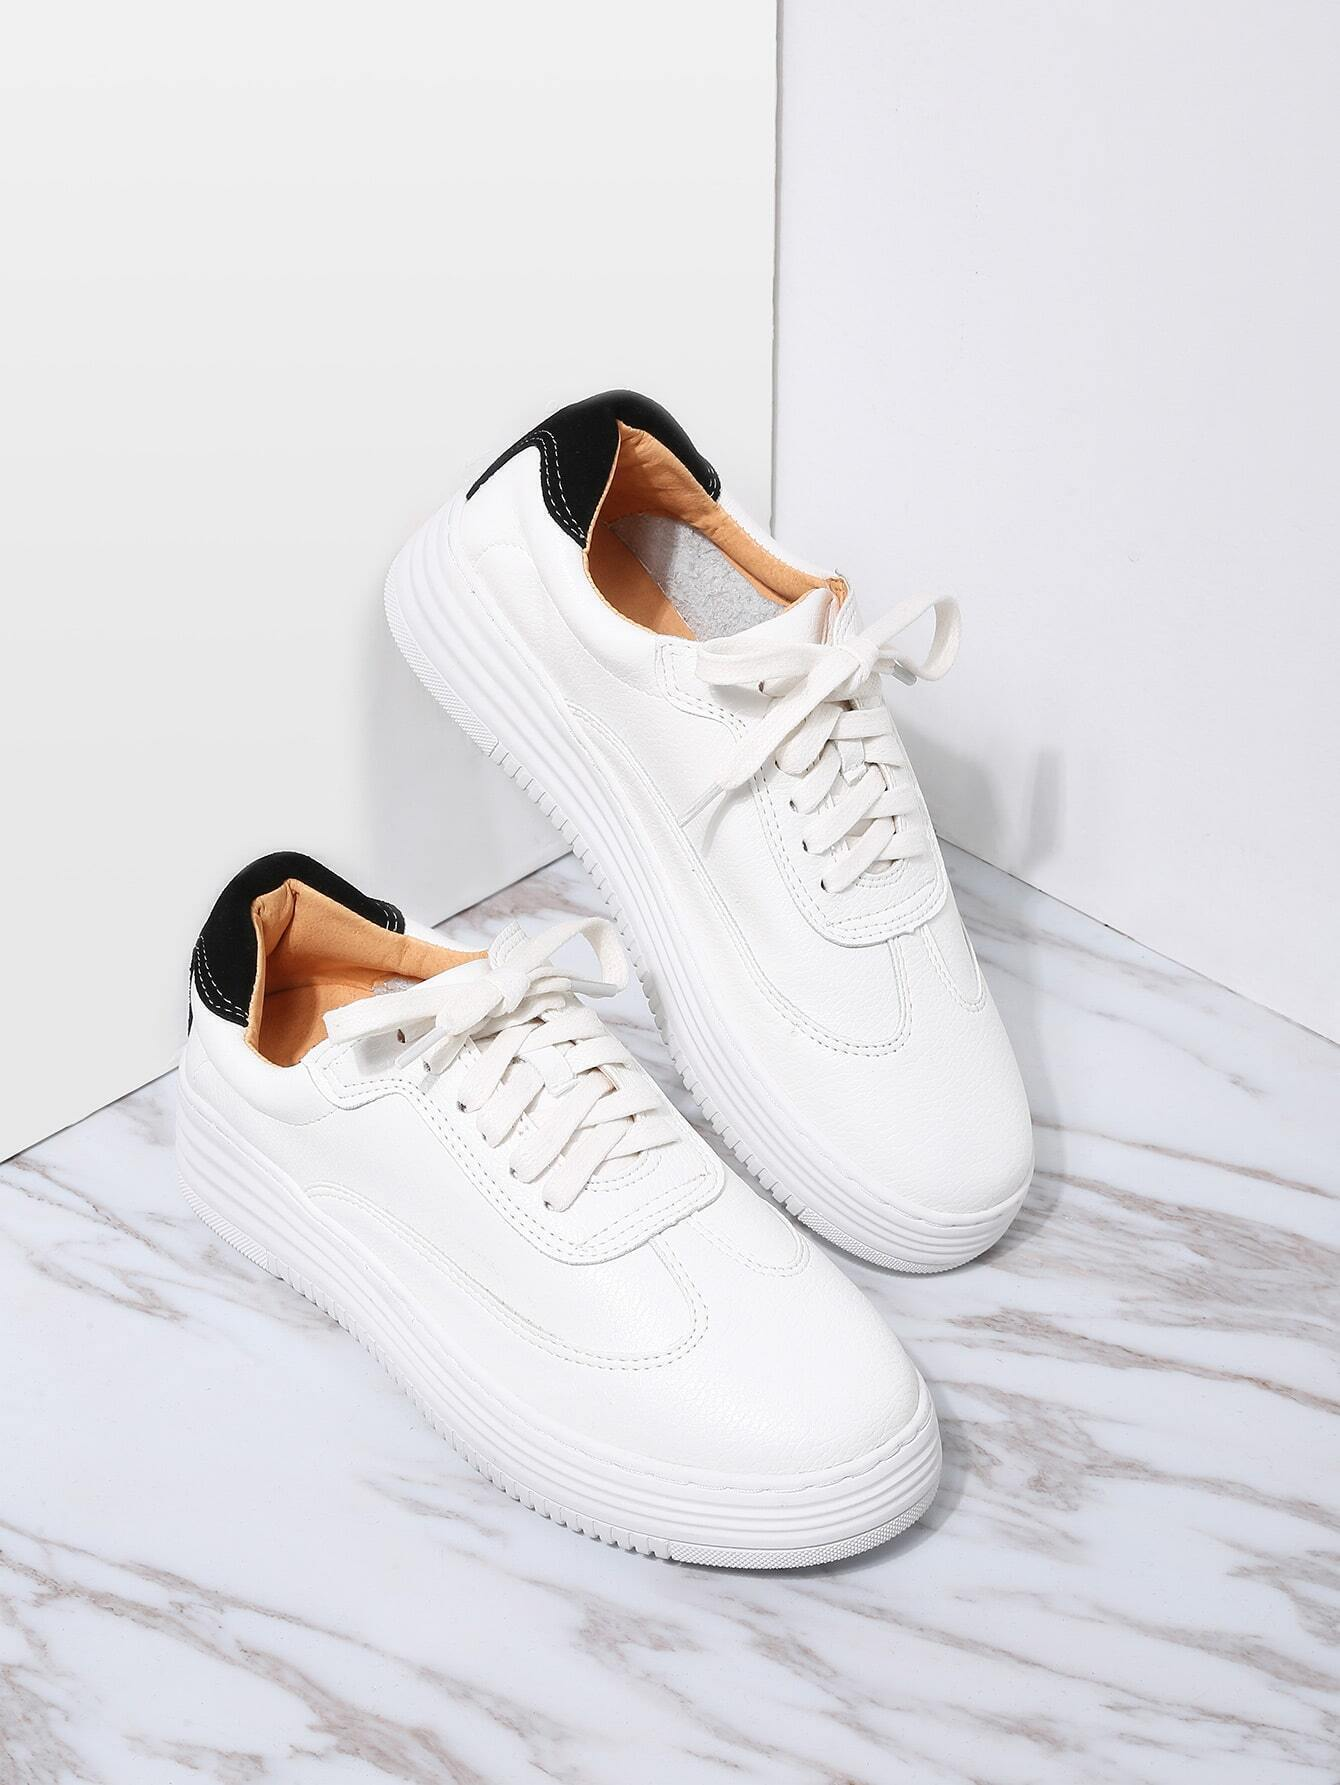 Buy White Black PU Rubber Sole Low Top Sneakers